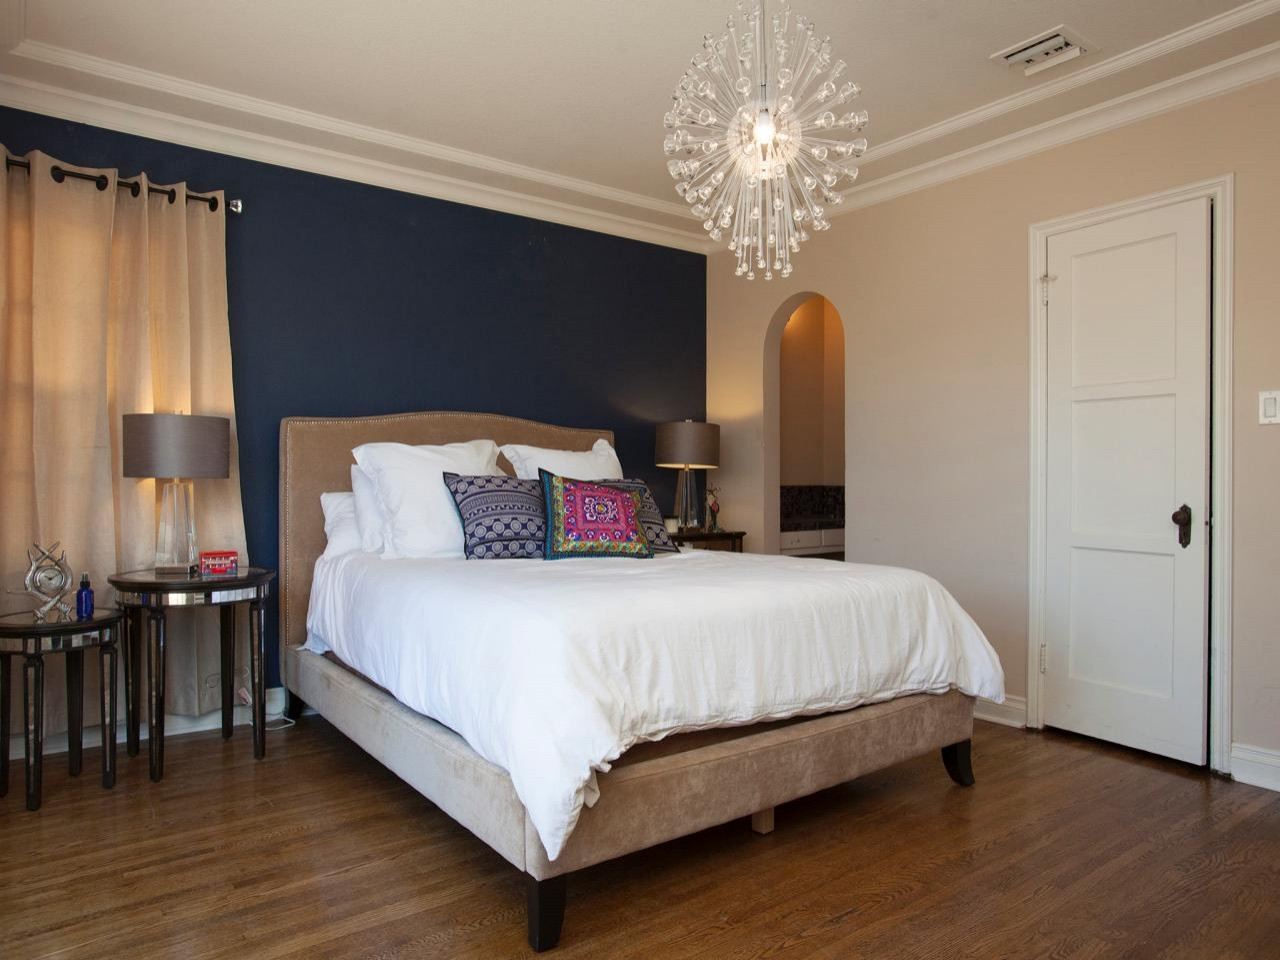 Best ideas about Accent Walls In Bedroom . Save or Pin Dark blue modern bedroom colors blue for accent walls Now.